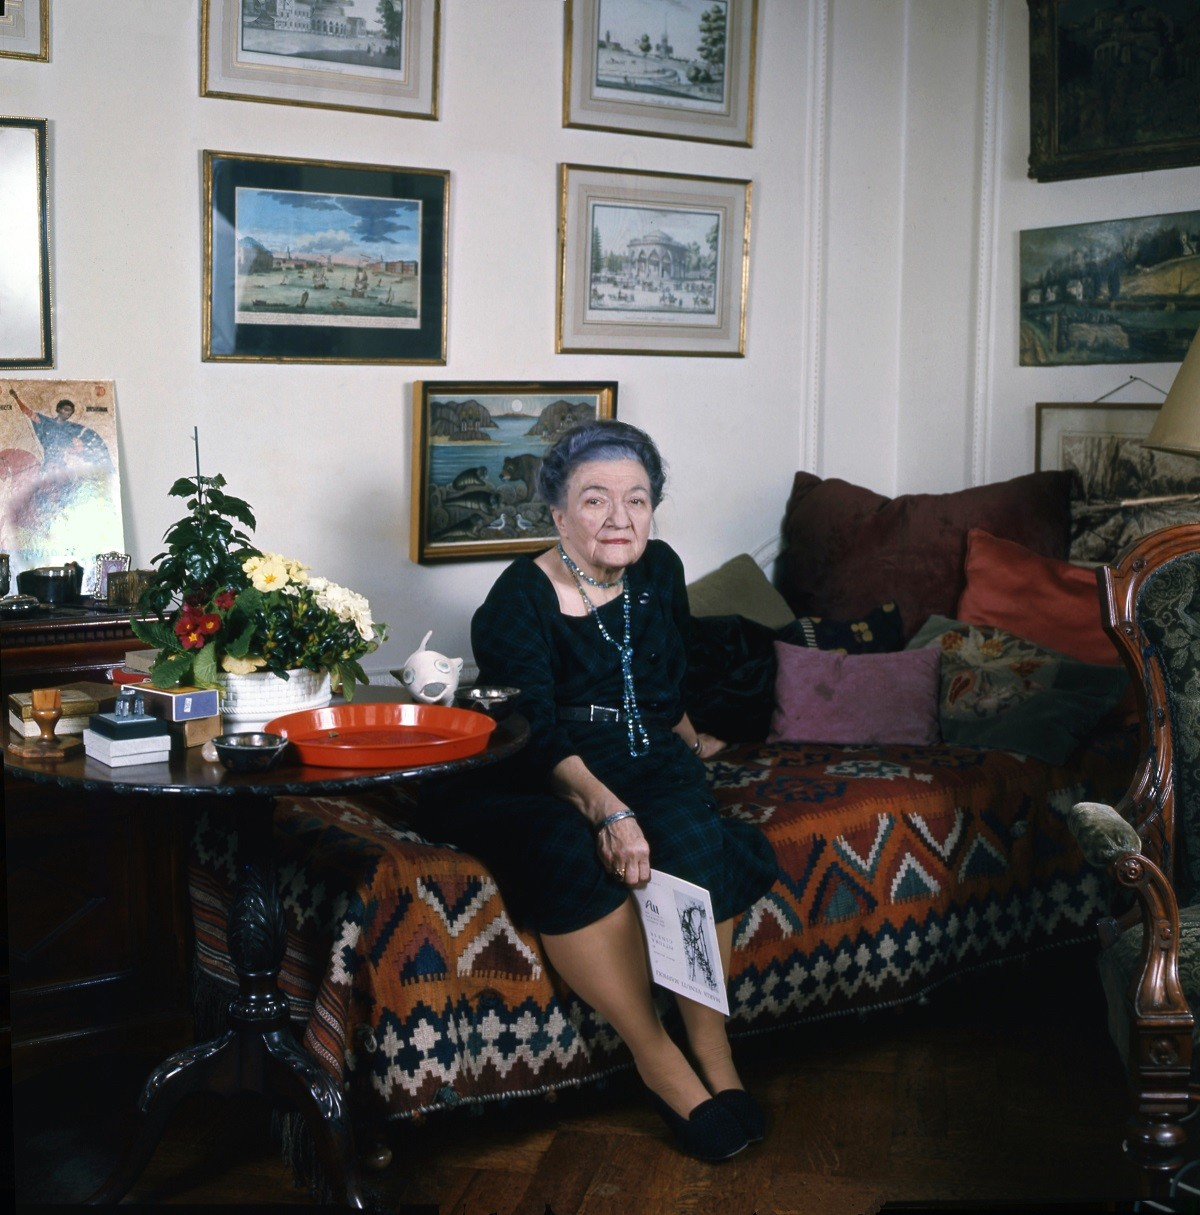 Moura Budberg. Picture taken in her apartment in London in 1972 by Allan Warren